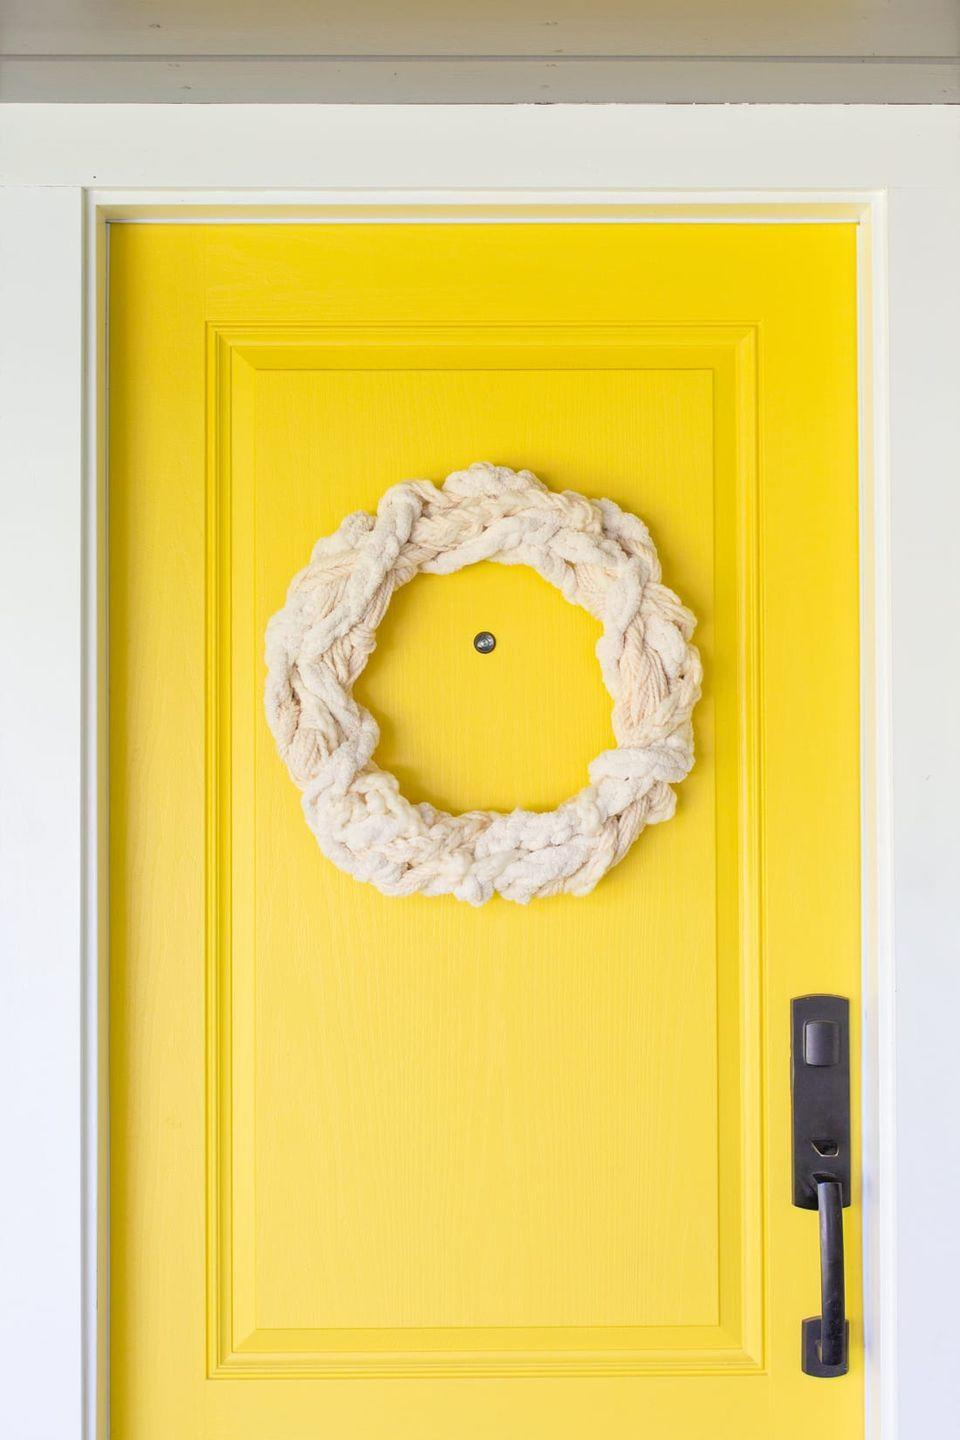 """<p>Consider this soft, textured wreath your front door's favorite chunky knit sweater. </p><p><a class=""""link rapid-noclick-resp"""" href=""""https://lovelyindeed.com/make-a-textured-yarn-wreath-for-fall/"""" rel=""""nofollow noopener"""" target=""""_blank"""" data-ylk=""""slk:GET THE TUTORIAL"""">GET THE TUTORIAL</a> </p>"""